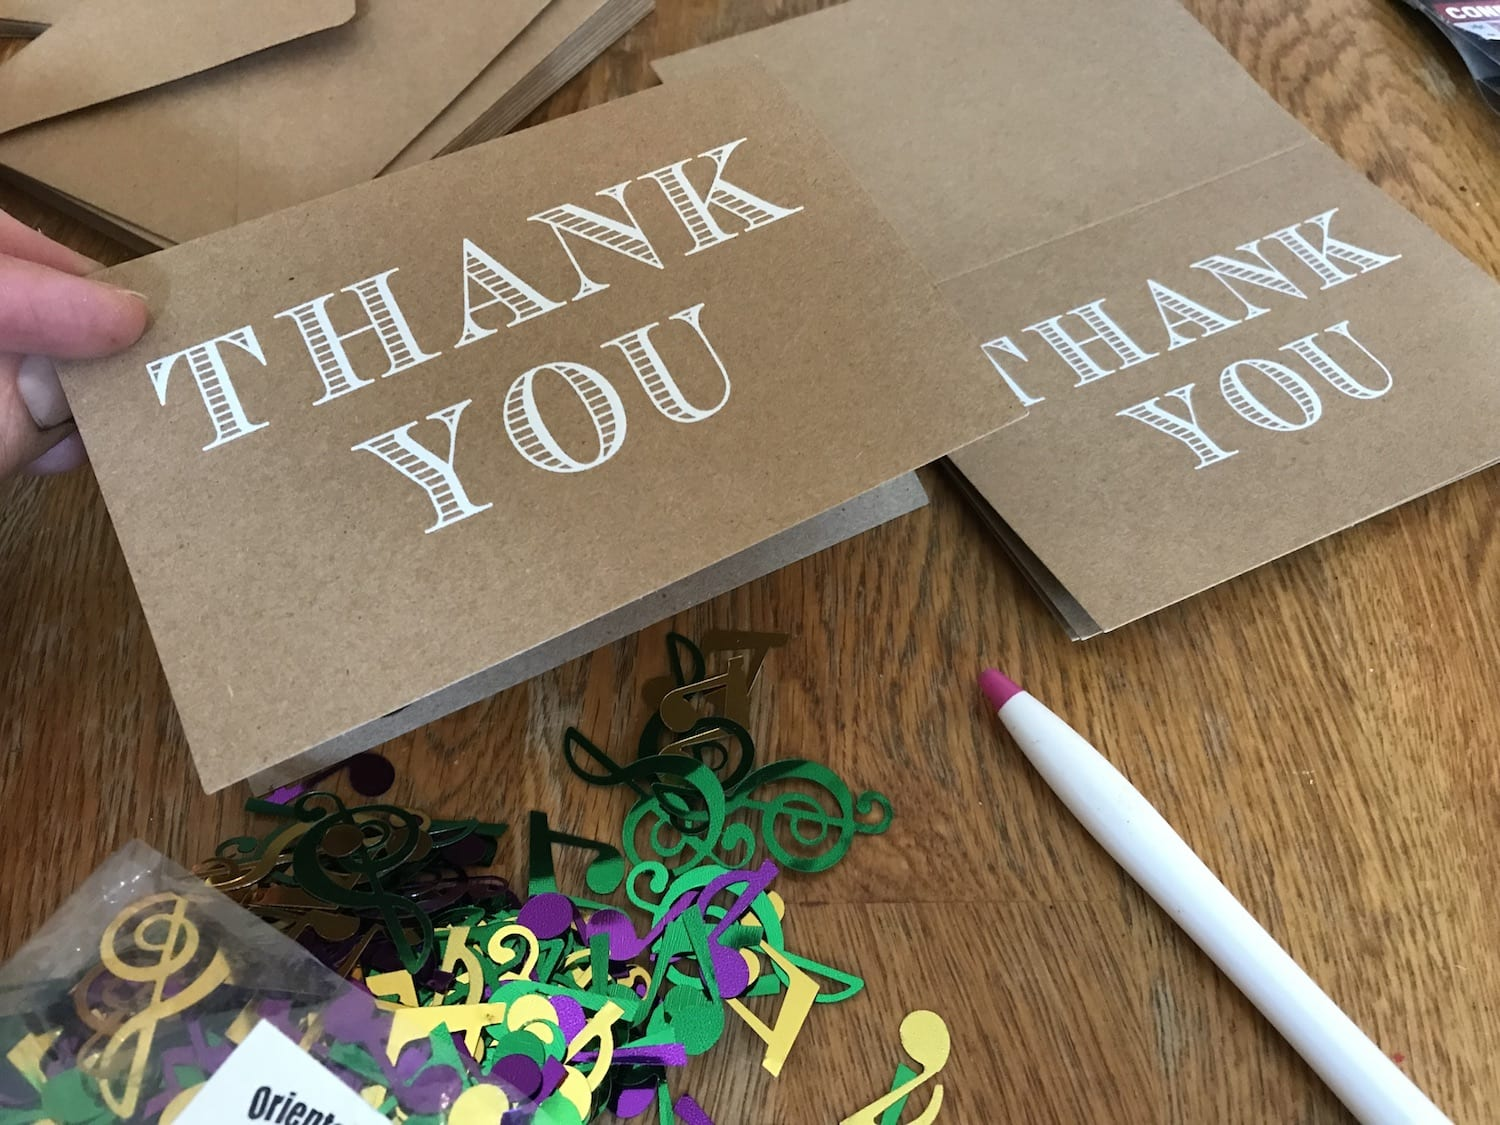 Use confetti to make Thank you notes fun